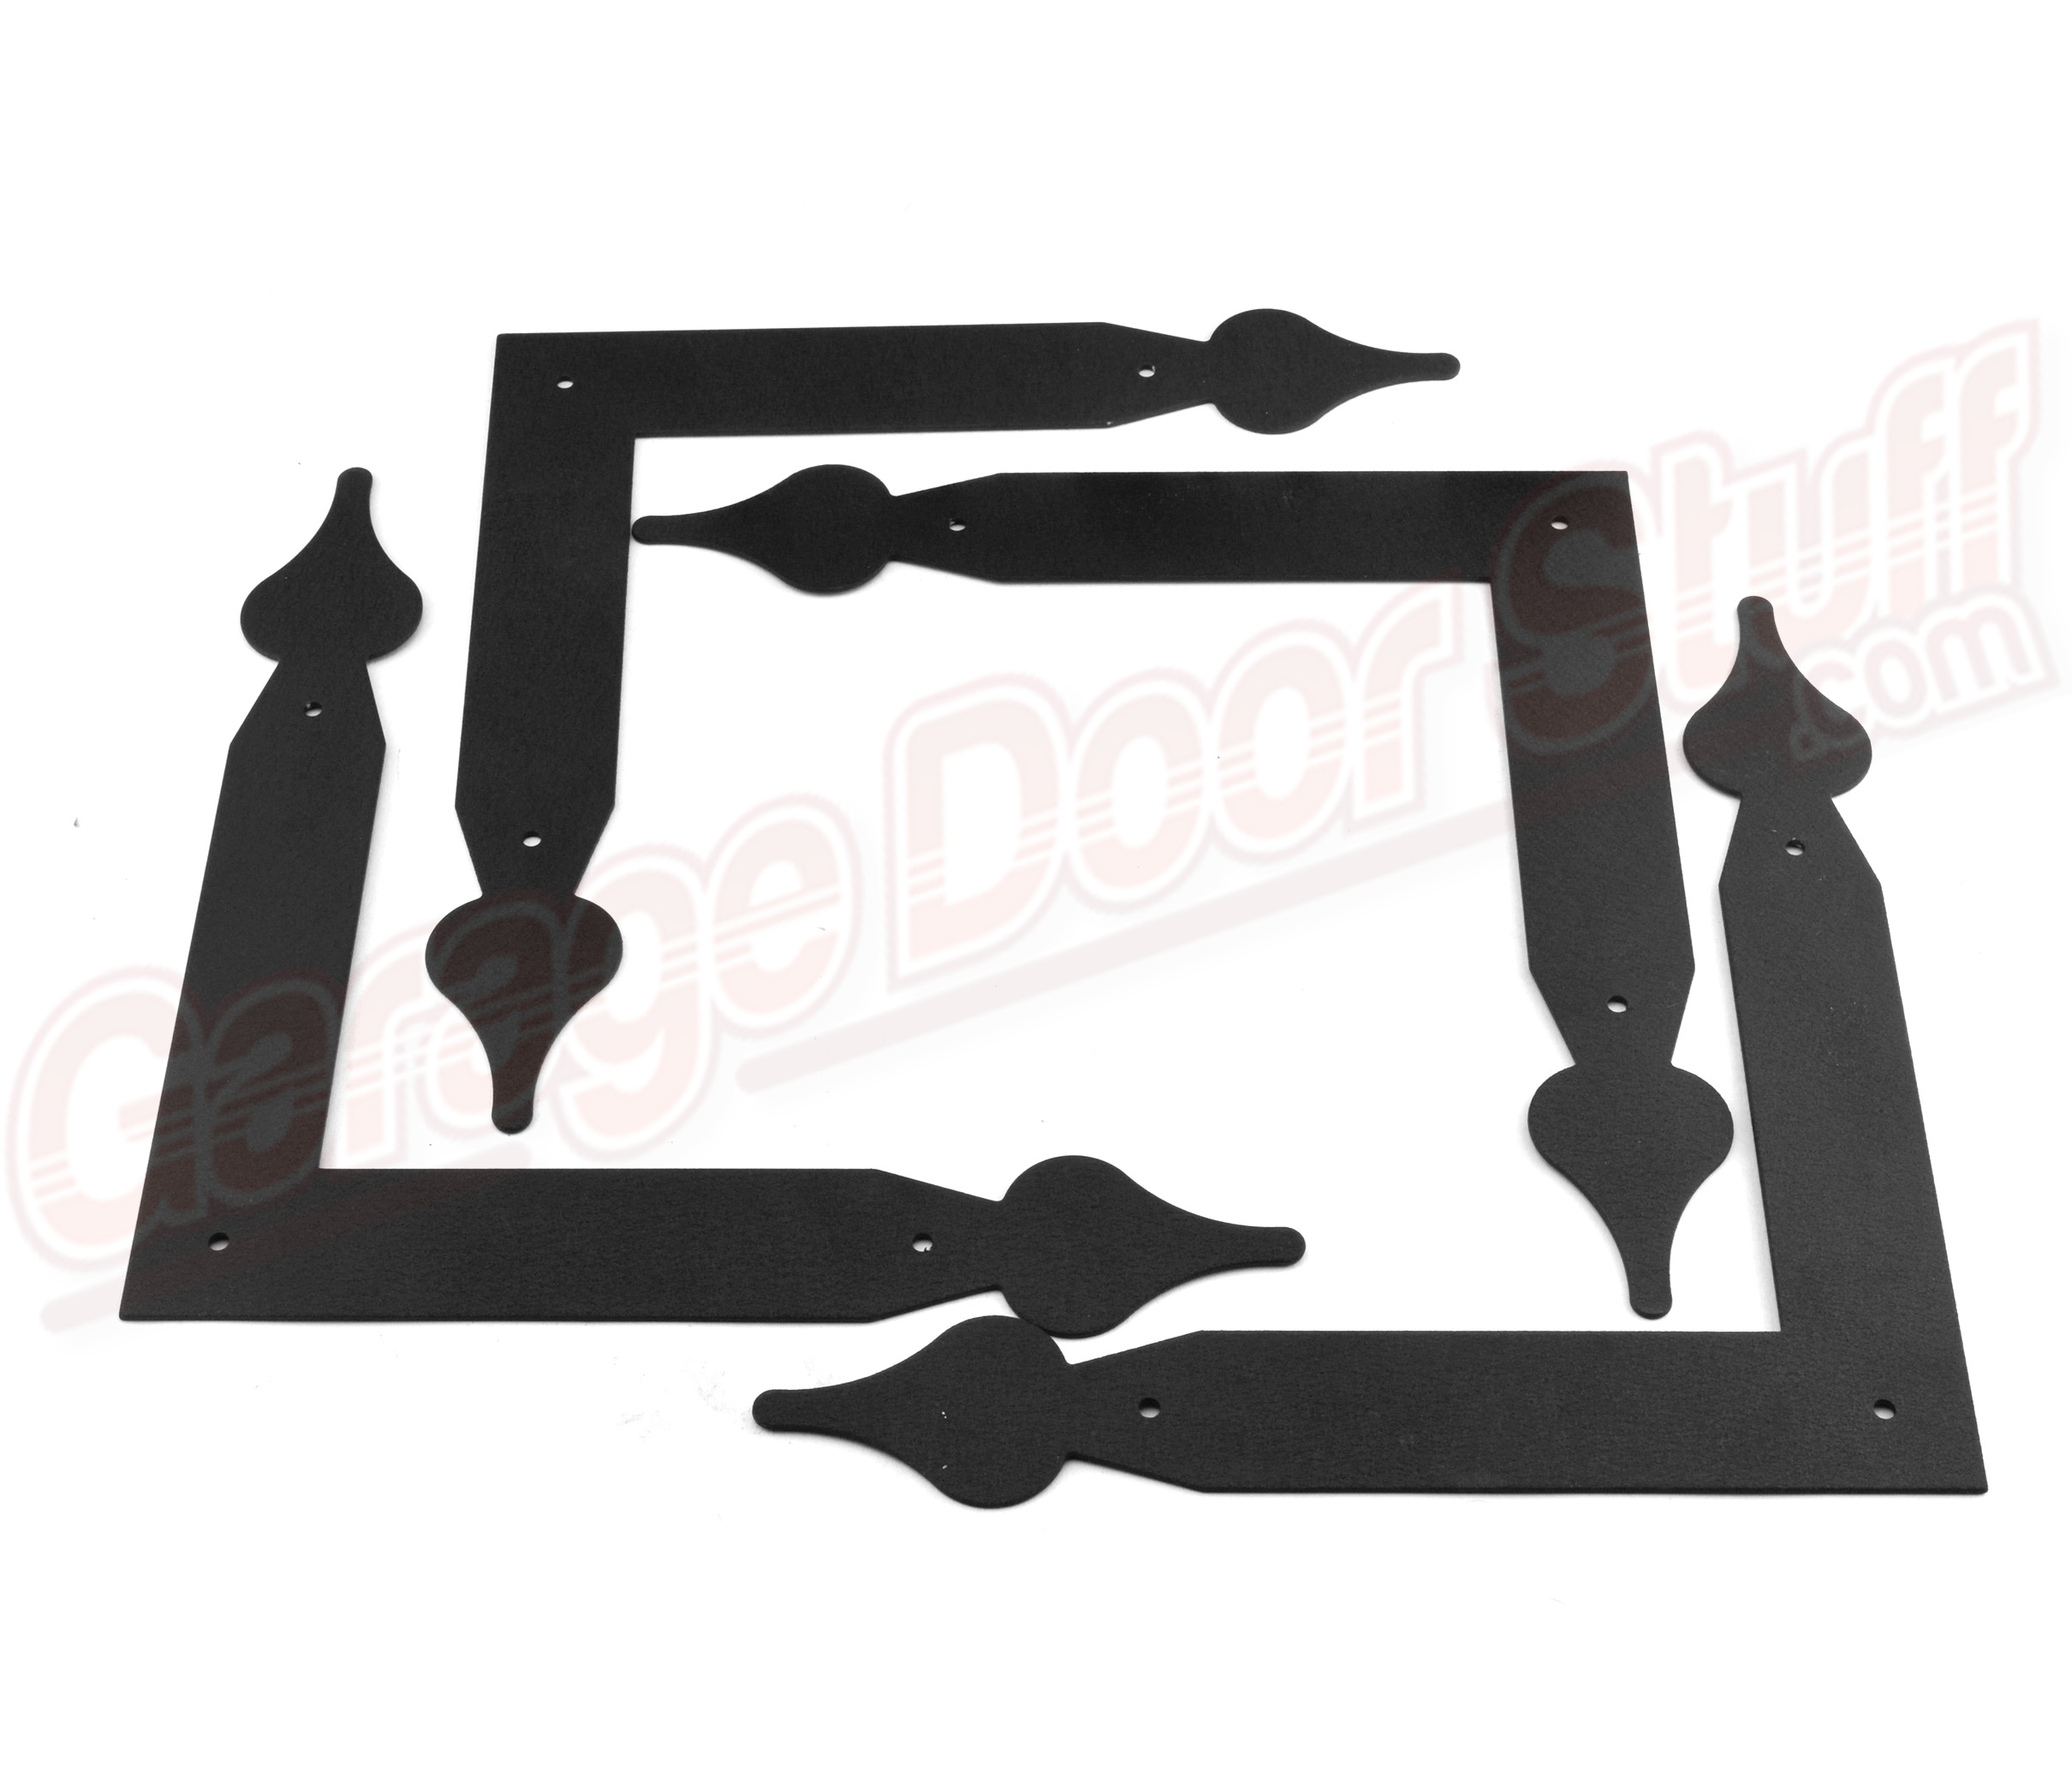 hardware decor product decorative door set garage